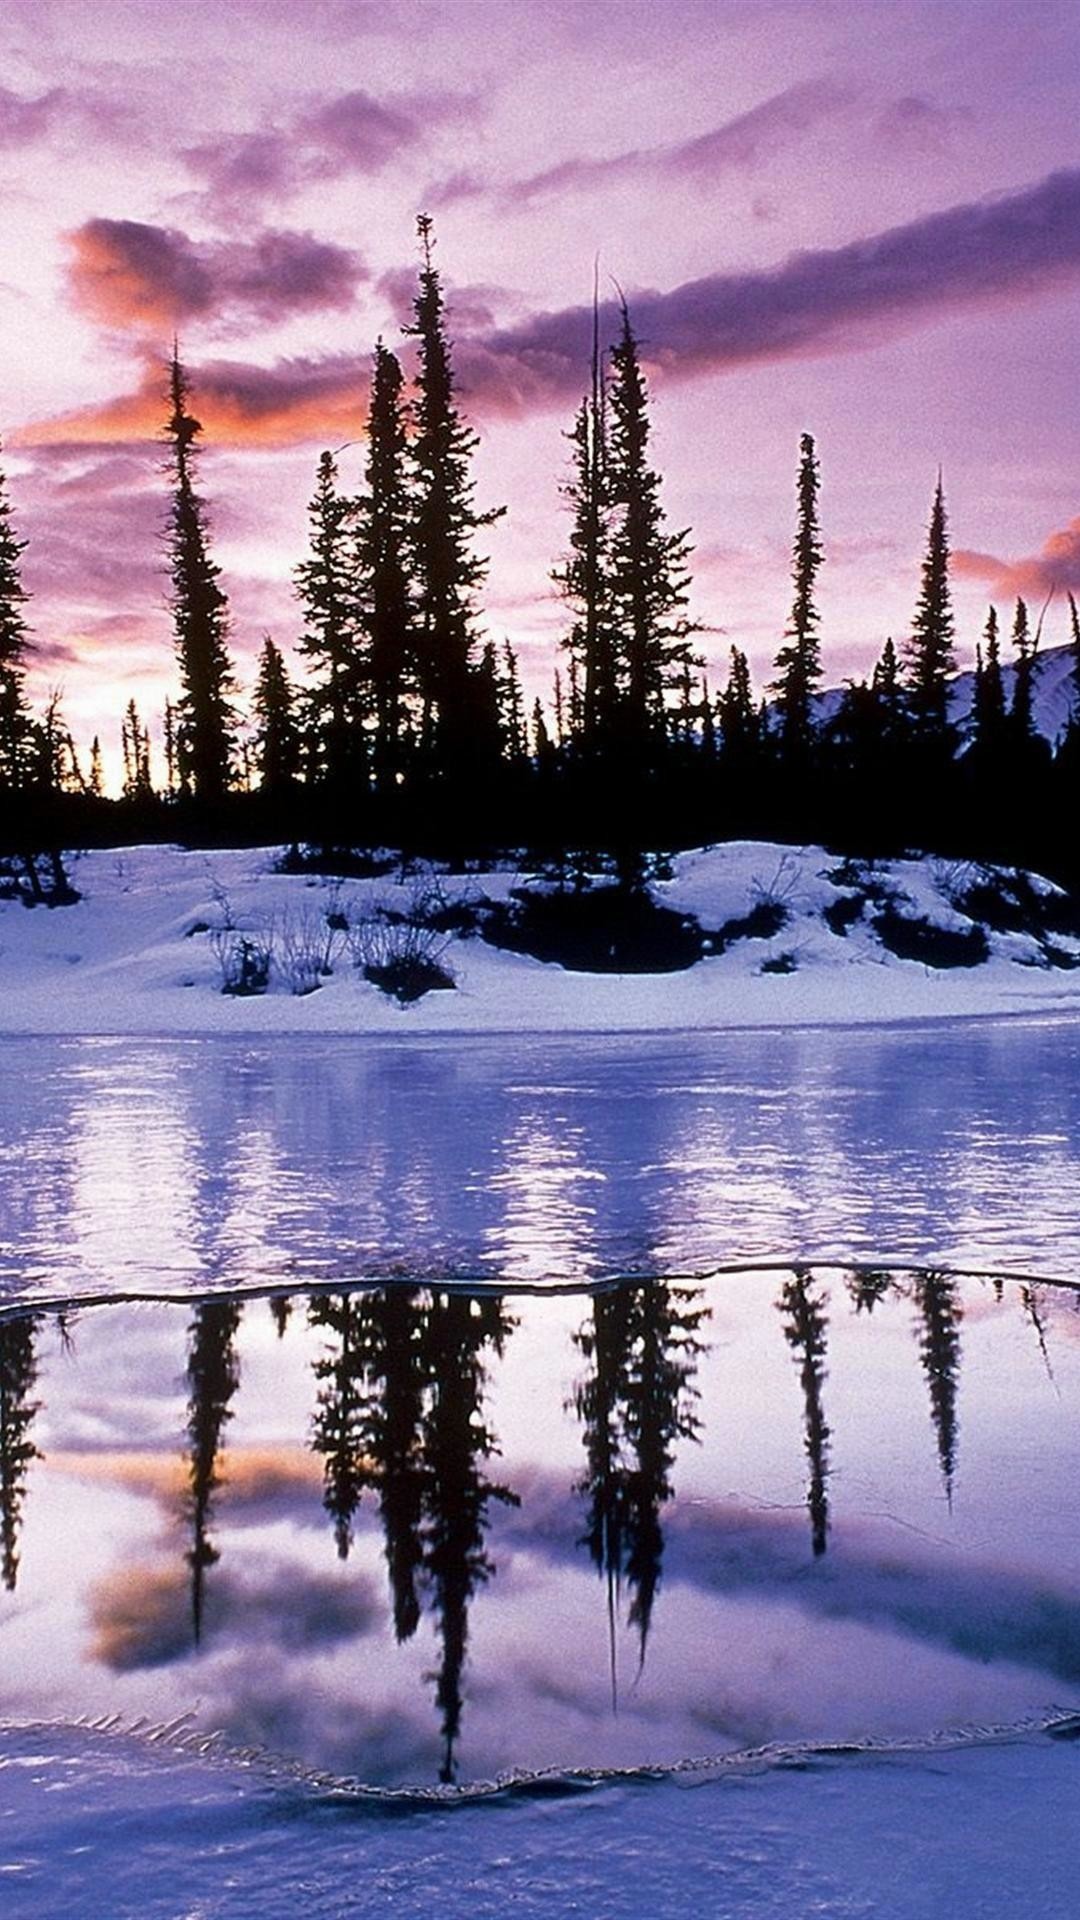 nature wallpapers iphone 6: Beautiful Nature Wallpapers IPhone 6 (69+ Images